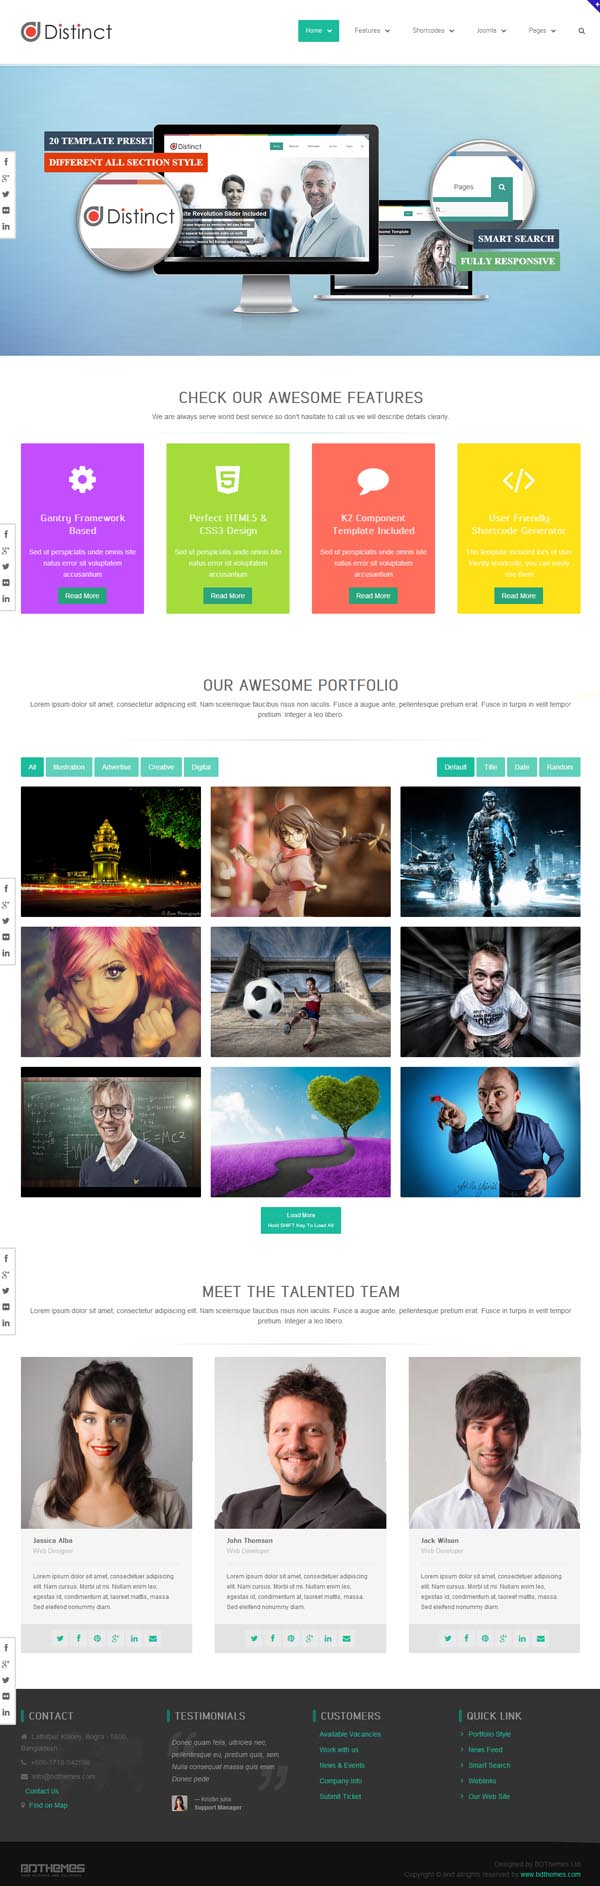 Distinct - Multi-purpose Joomla Template